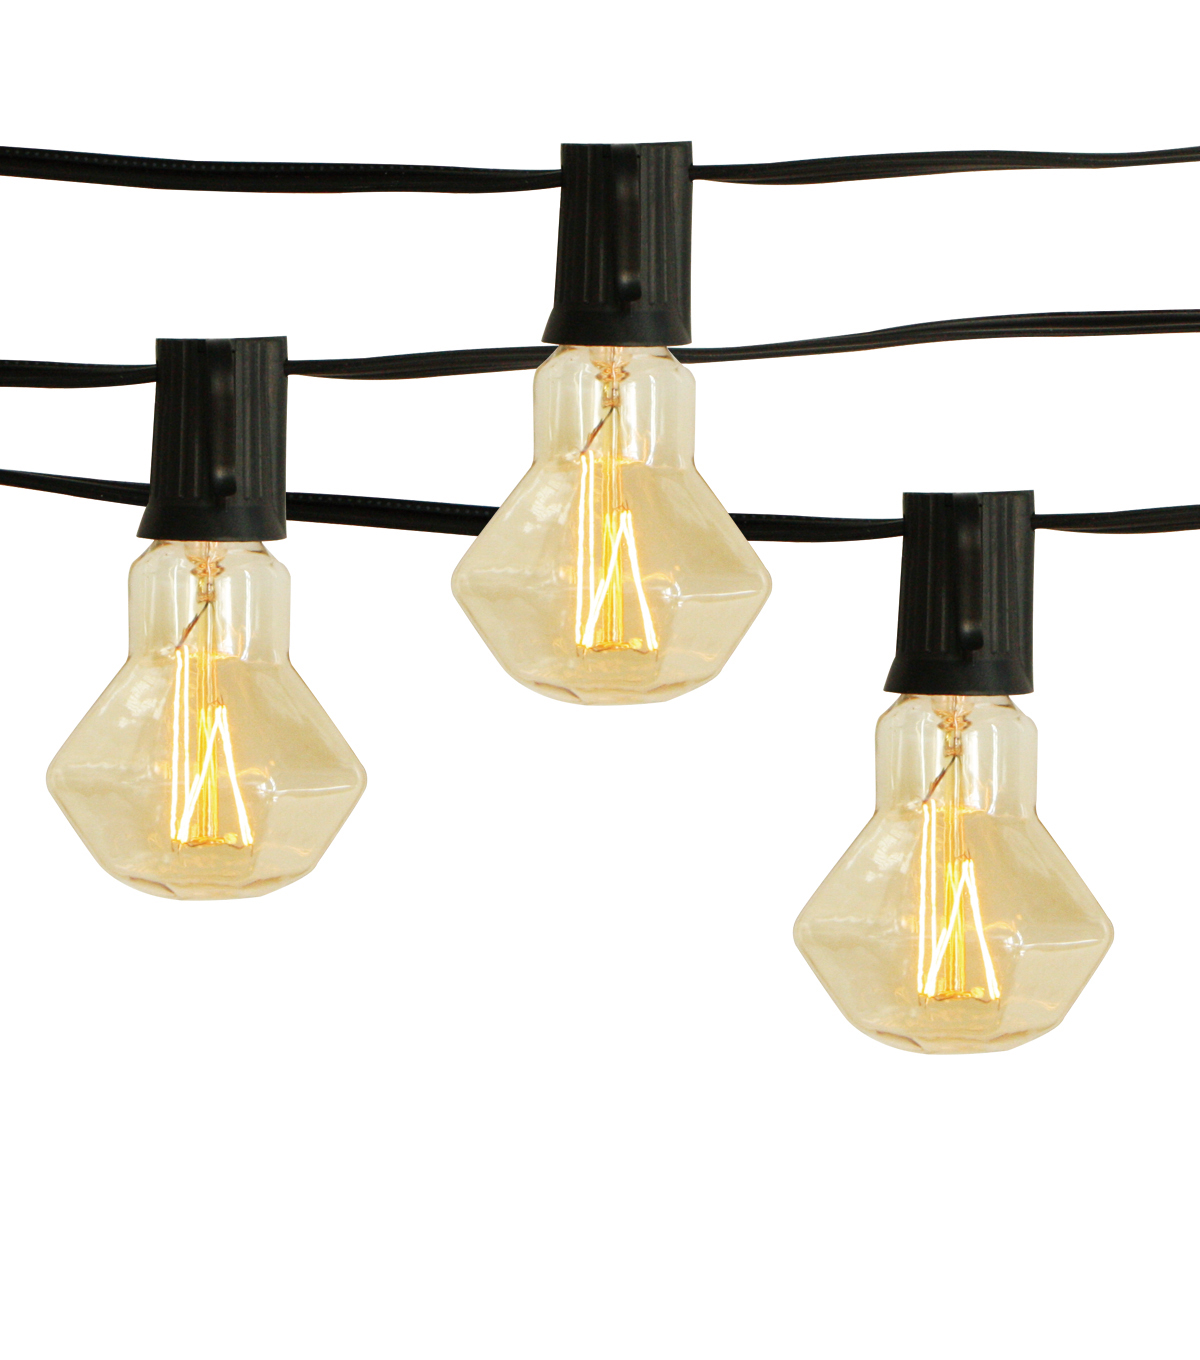 Hudson 43™ Candle & Light Collection Looped Filament String Lights